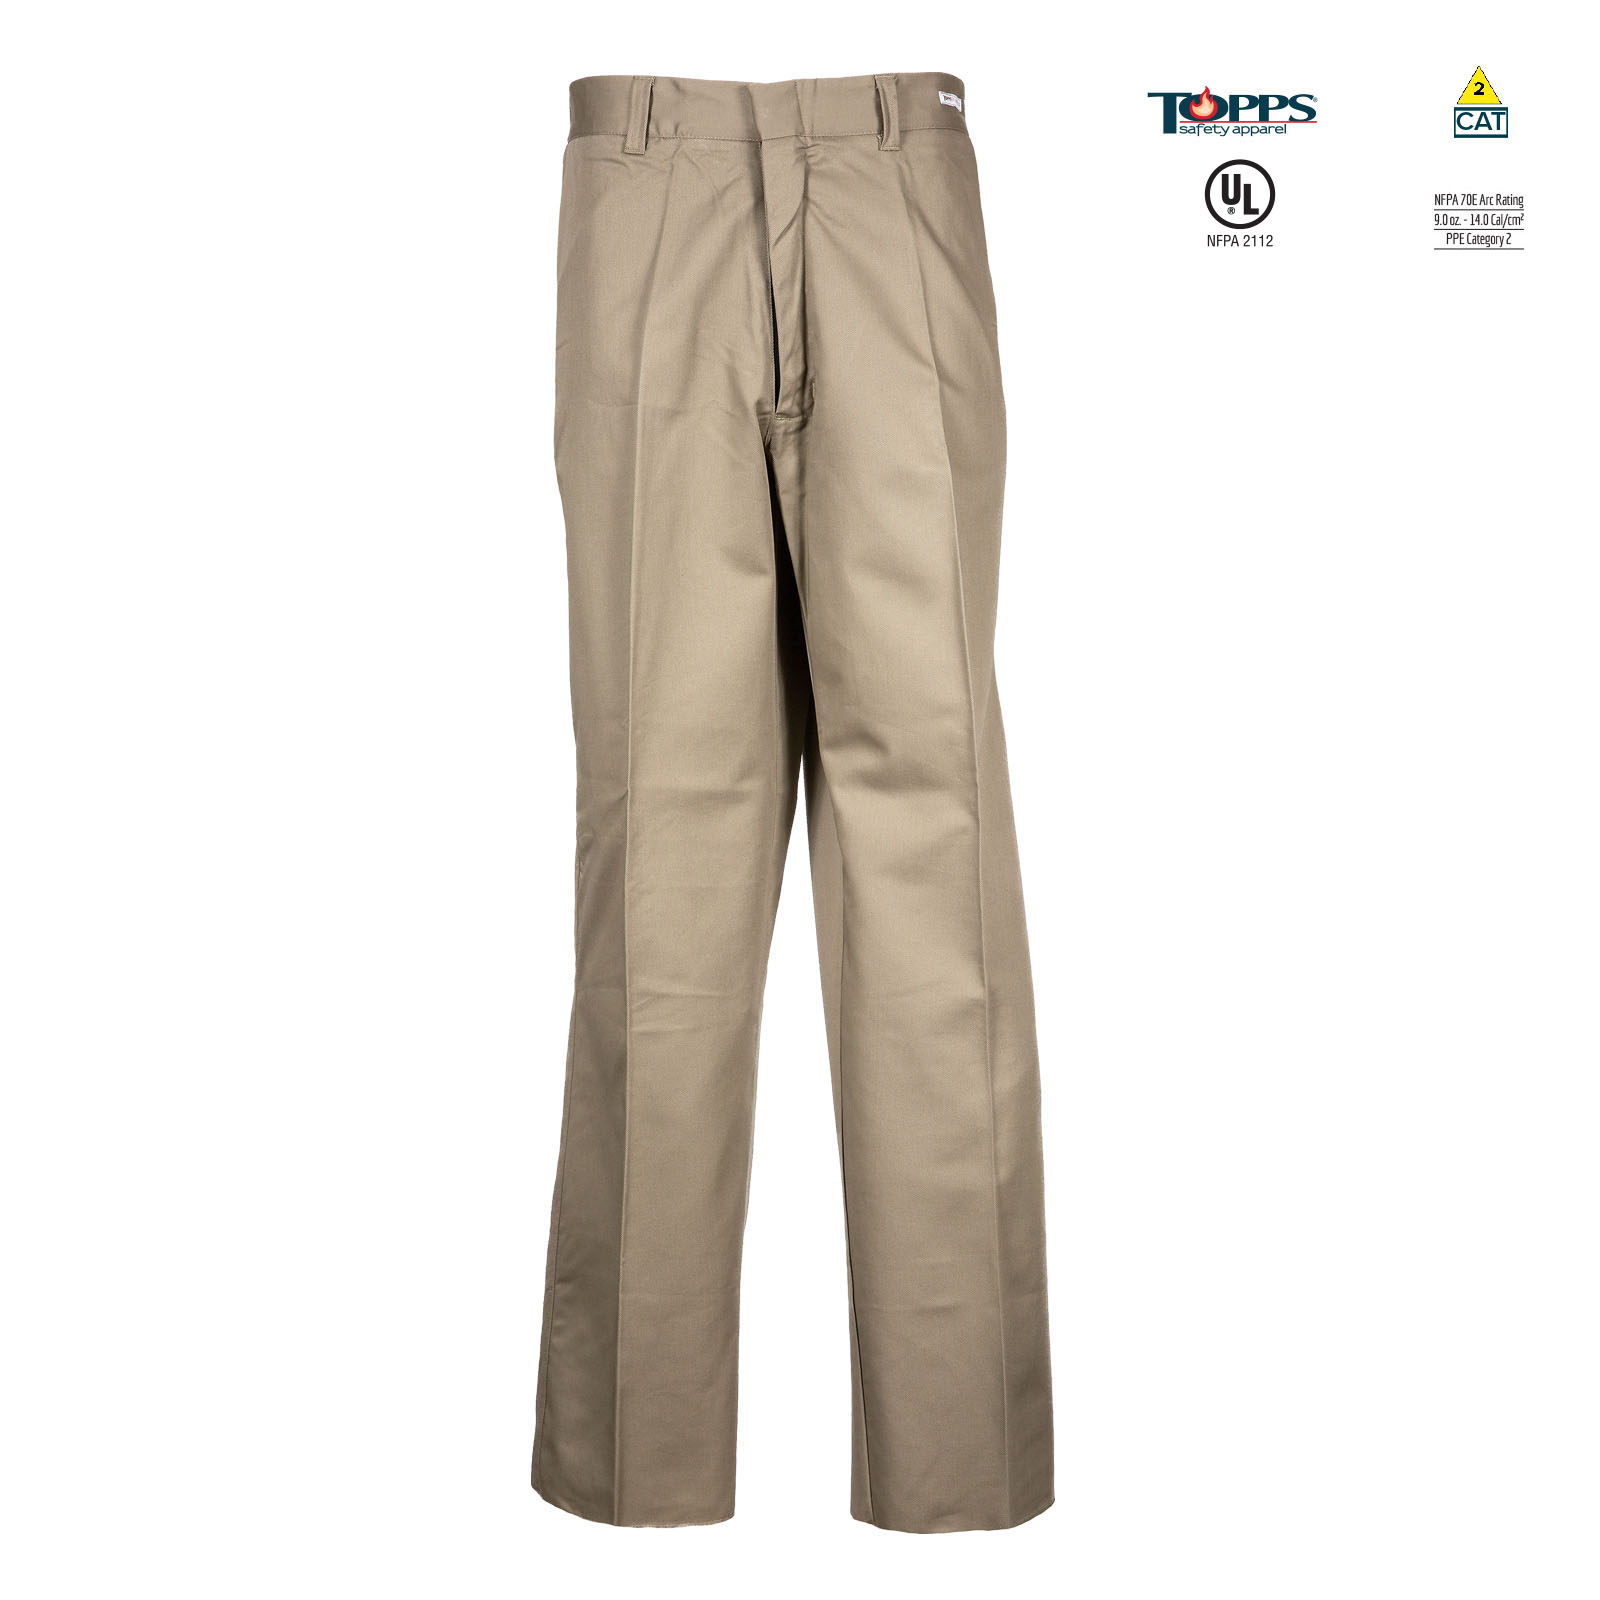 Flame Resistant Pants PEAK FR 88/12 Cotton/Nylon Blend Women's Flame Resistant Standard Uniform Pant-